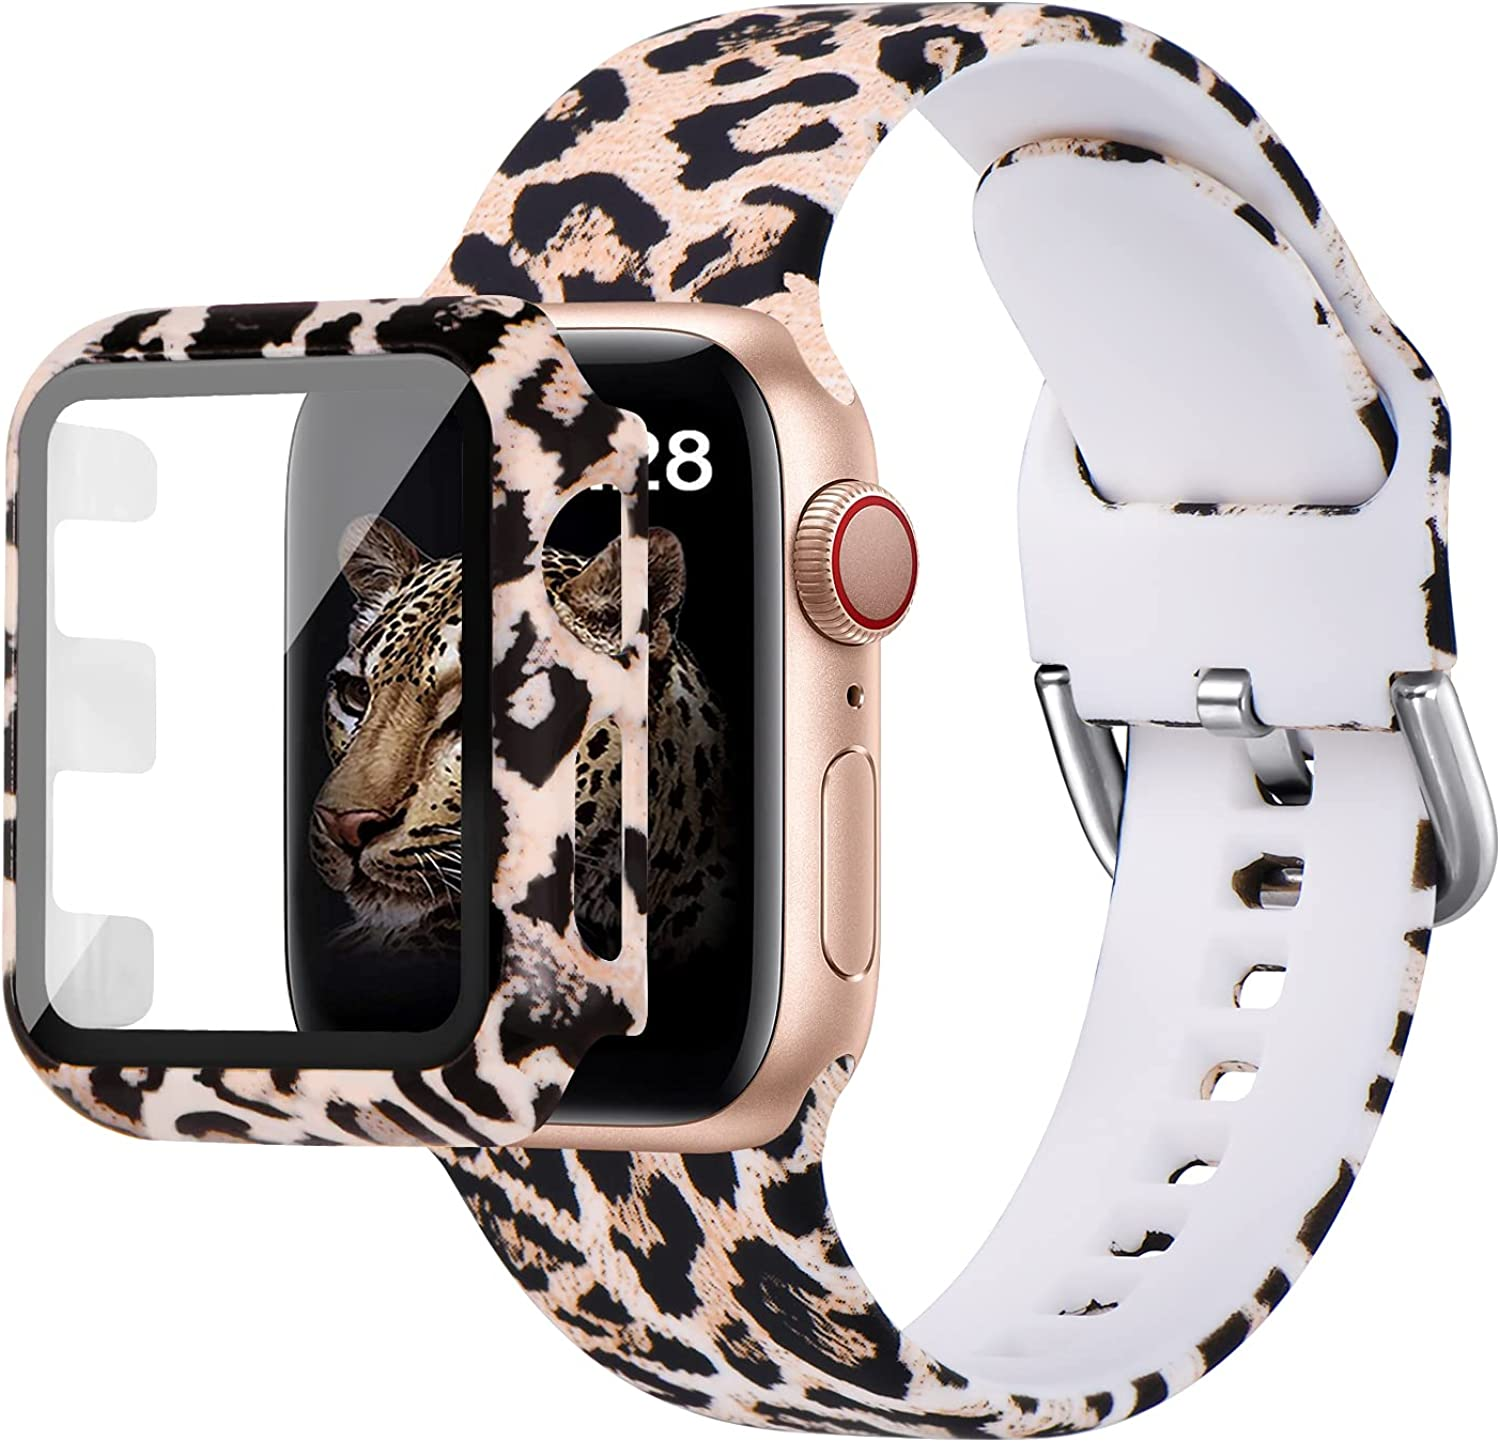 MNBVCXZ Compatible with Apple Watch Band 40mm 38mm 42mm 44mm with Apple Watch Screen Protector Case,iWatch SeriesSE 6 5 4 3 Silicone Leopard Print Sport Strap band